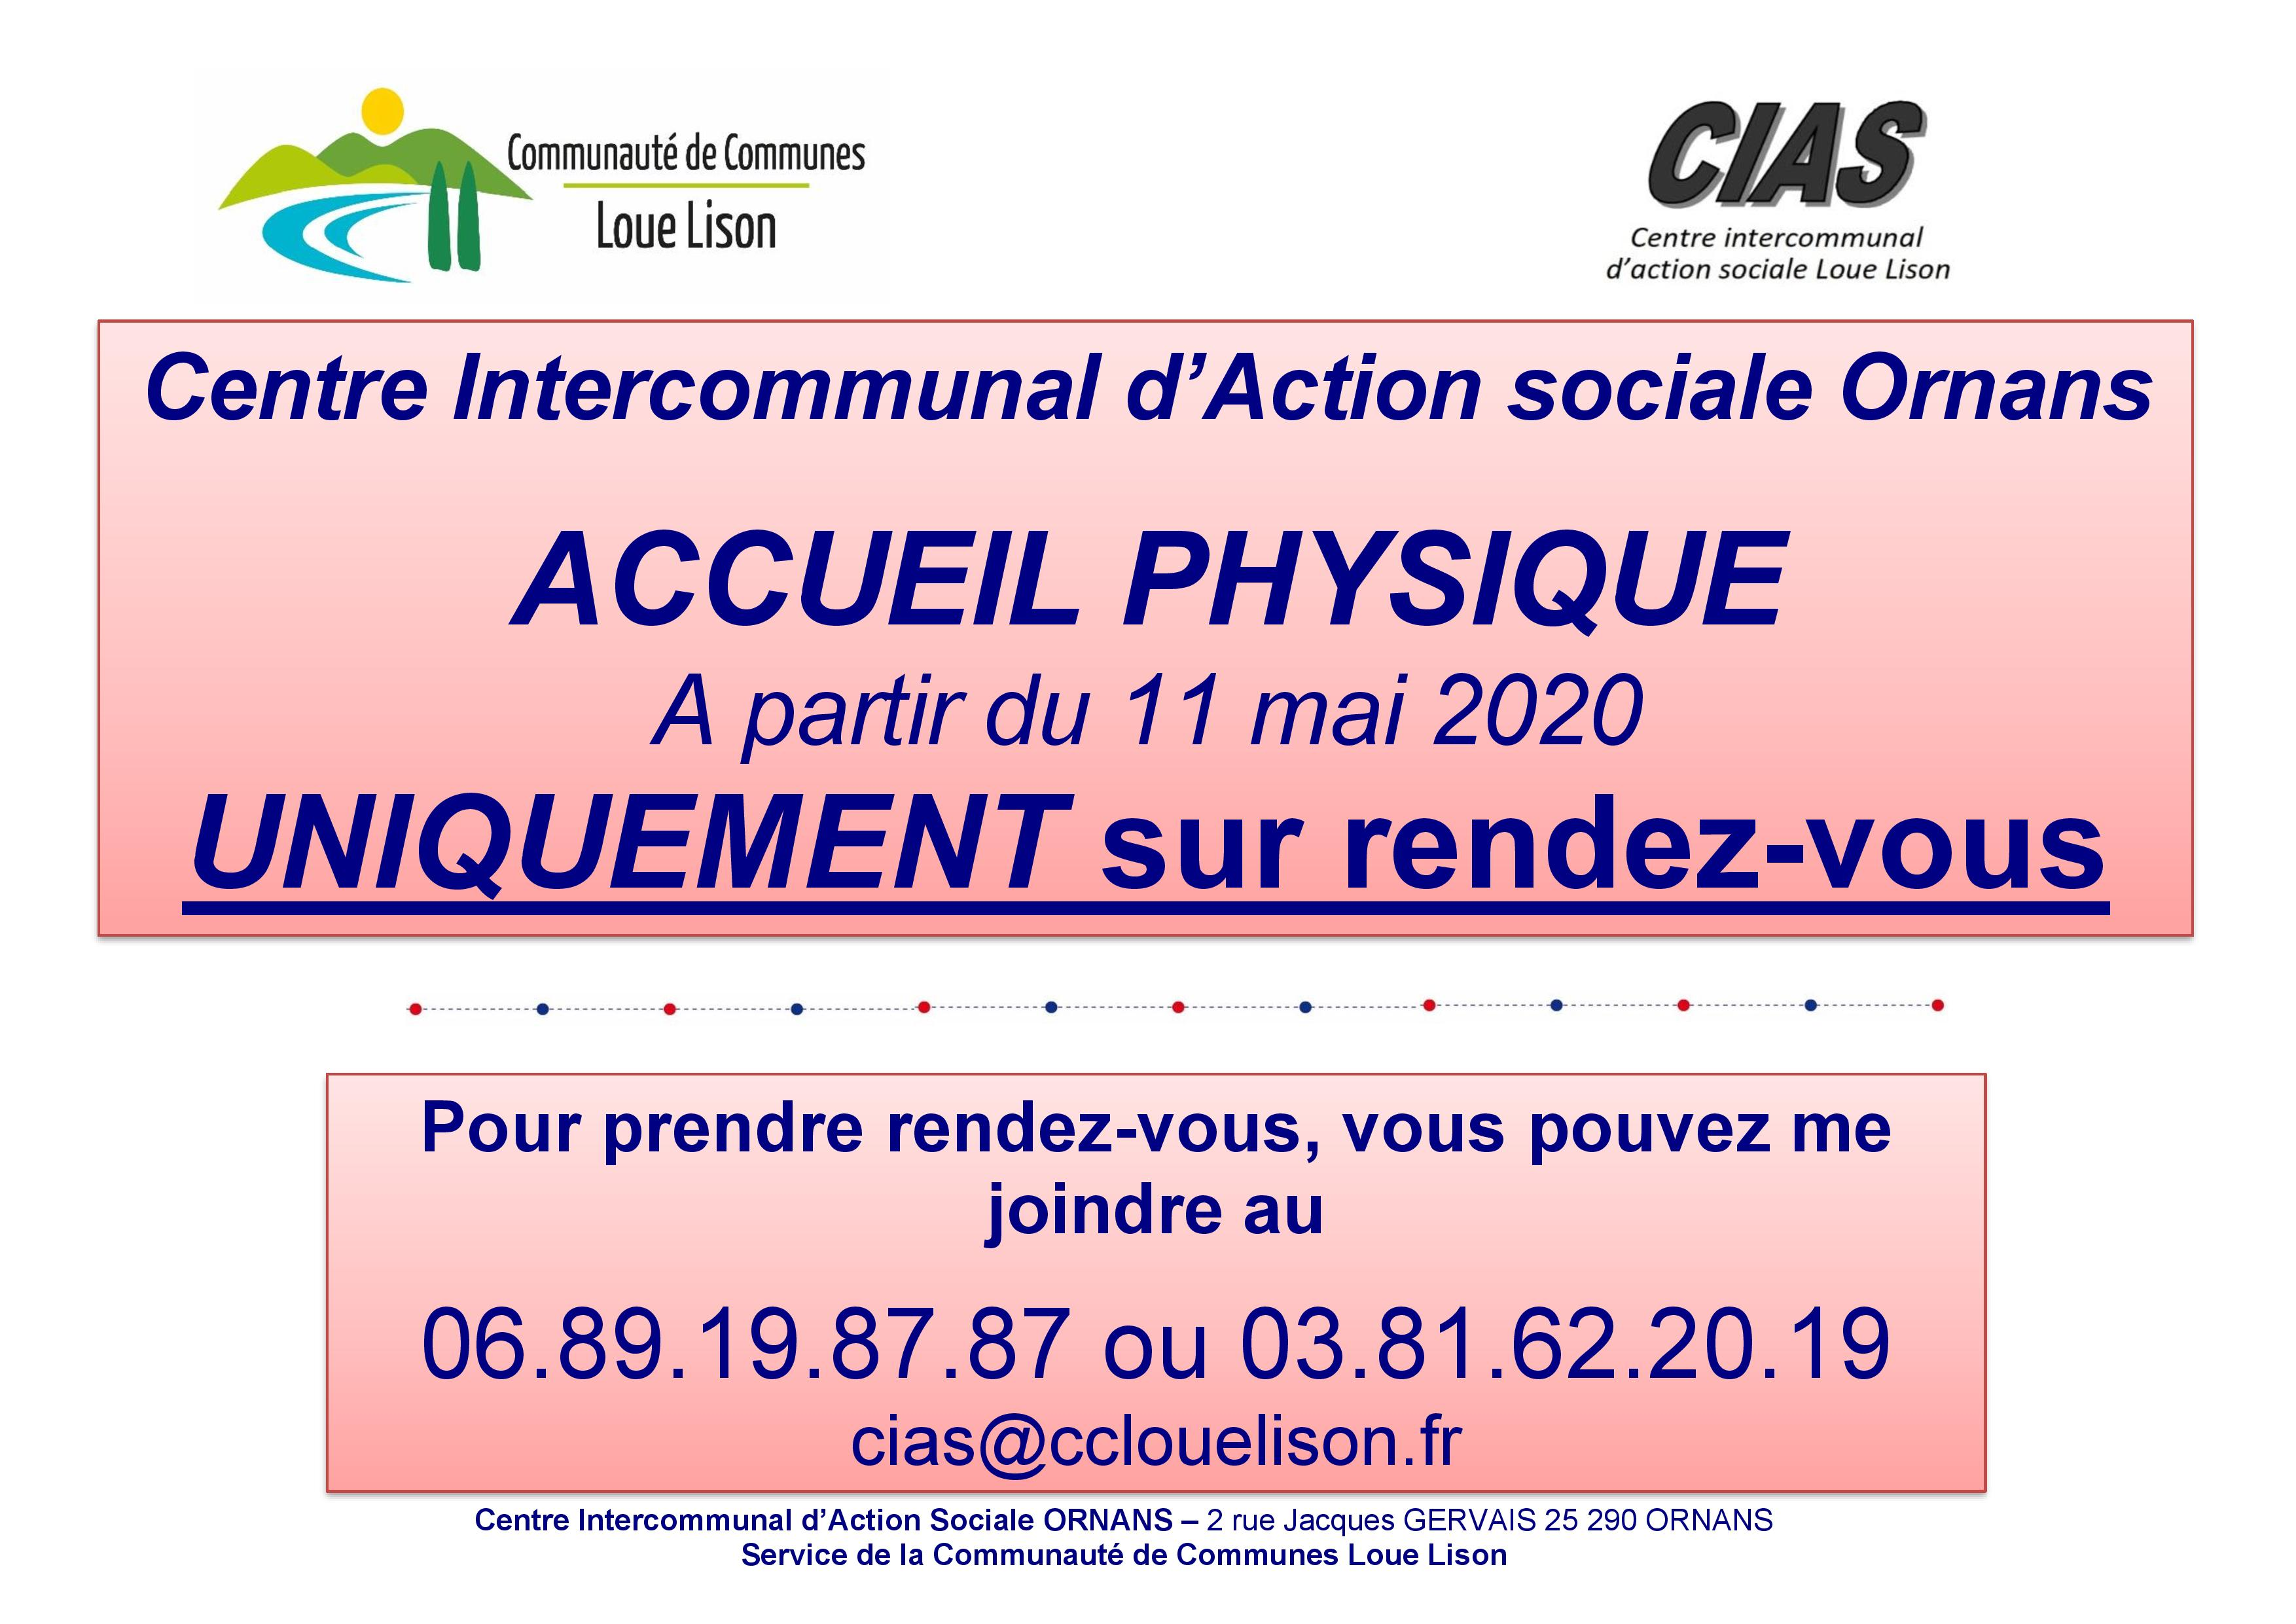 Centre Intercommunal daction sociale _1_-page-001.jpg